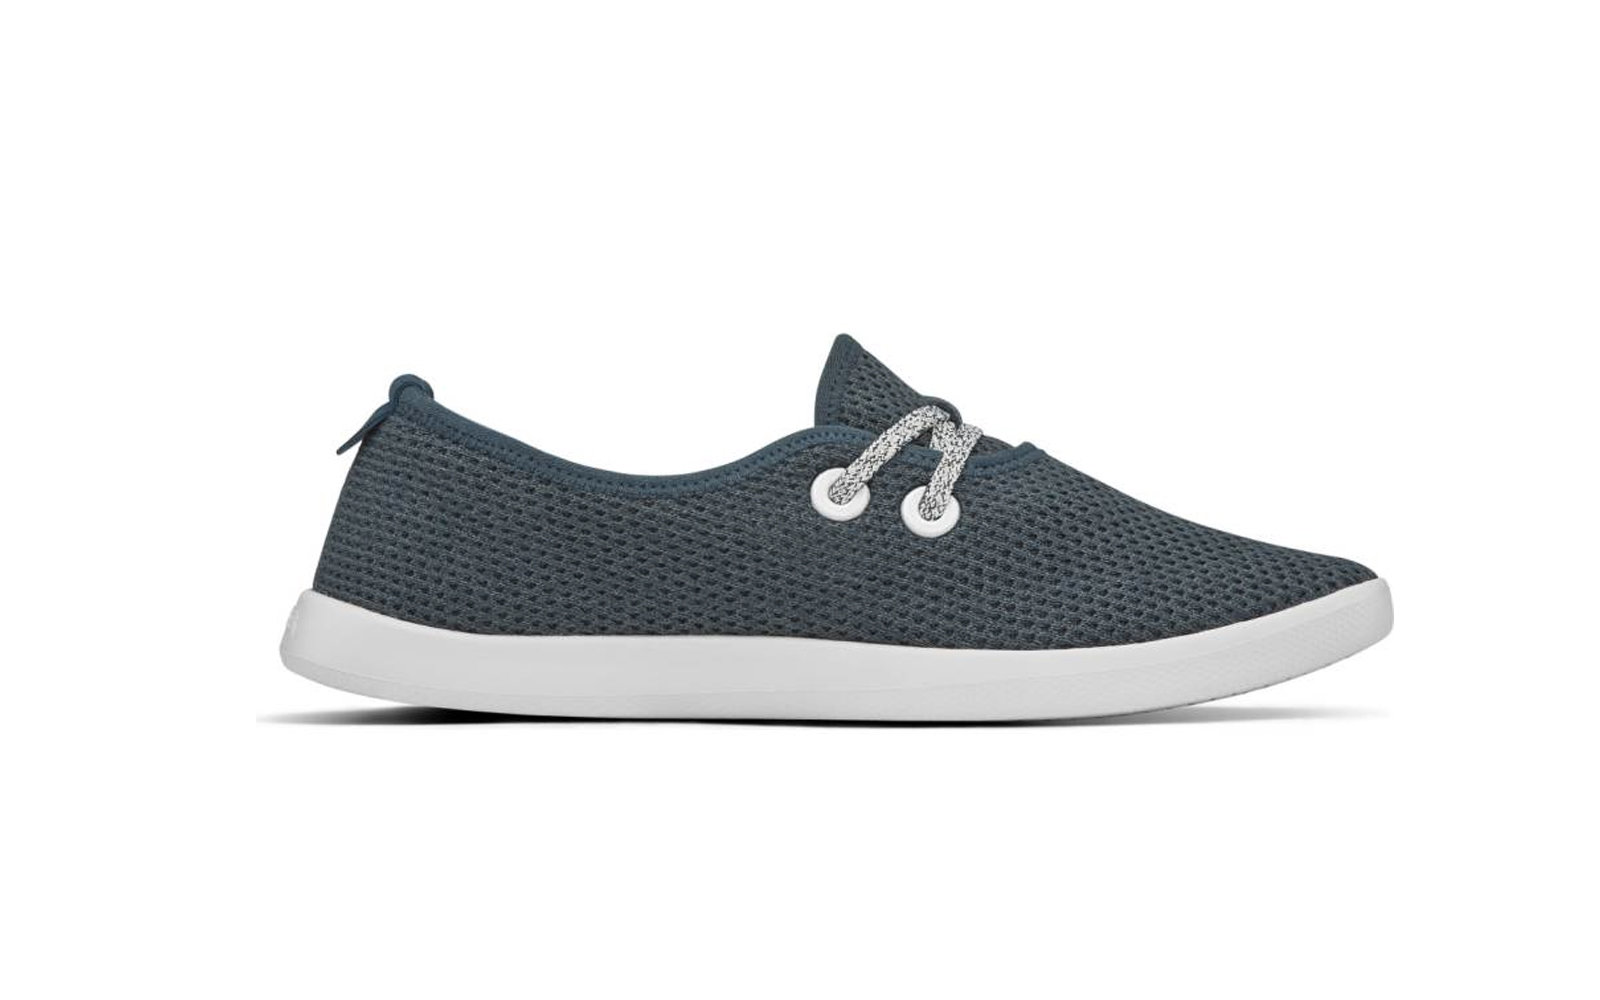 Allbirds Pop-In @ Nordstrom